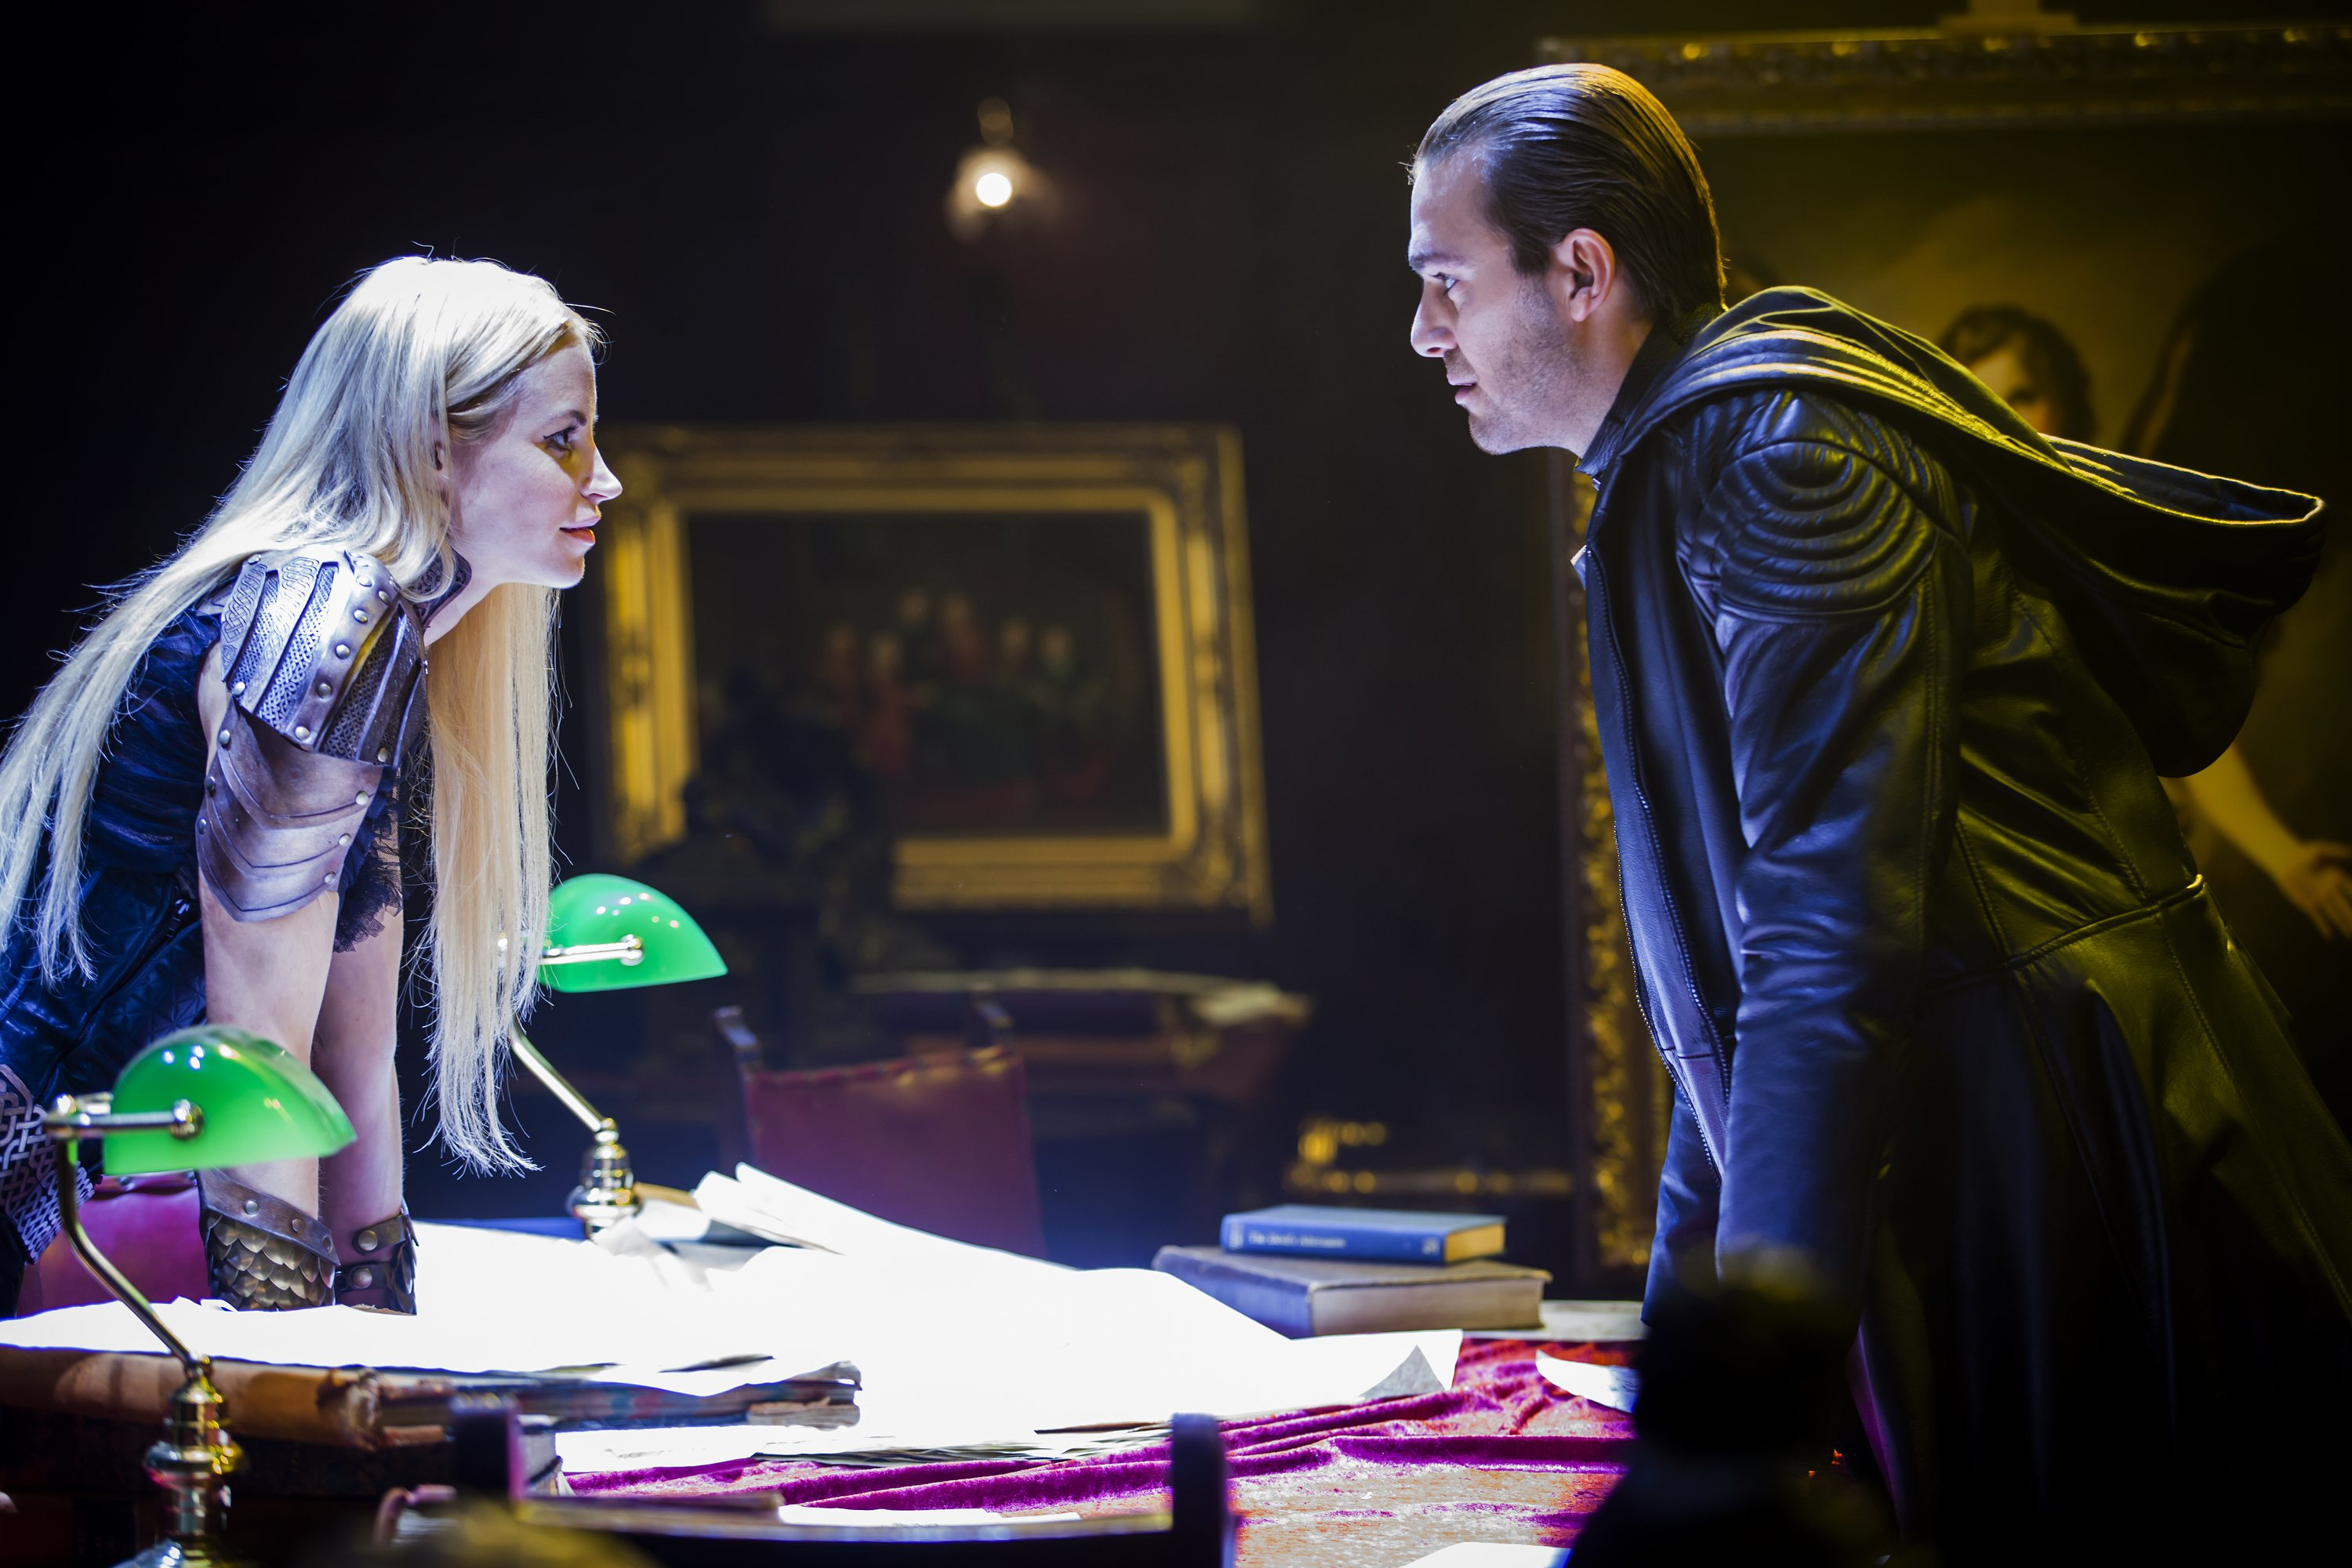 Dominion: Carl Beukes e Katrine De Candole nell'episodio The Flood